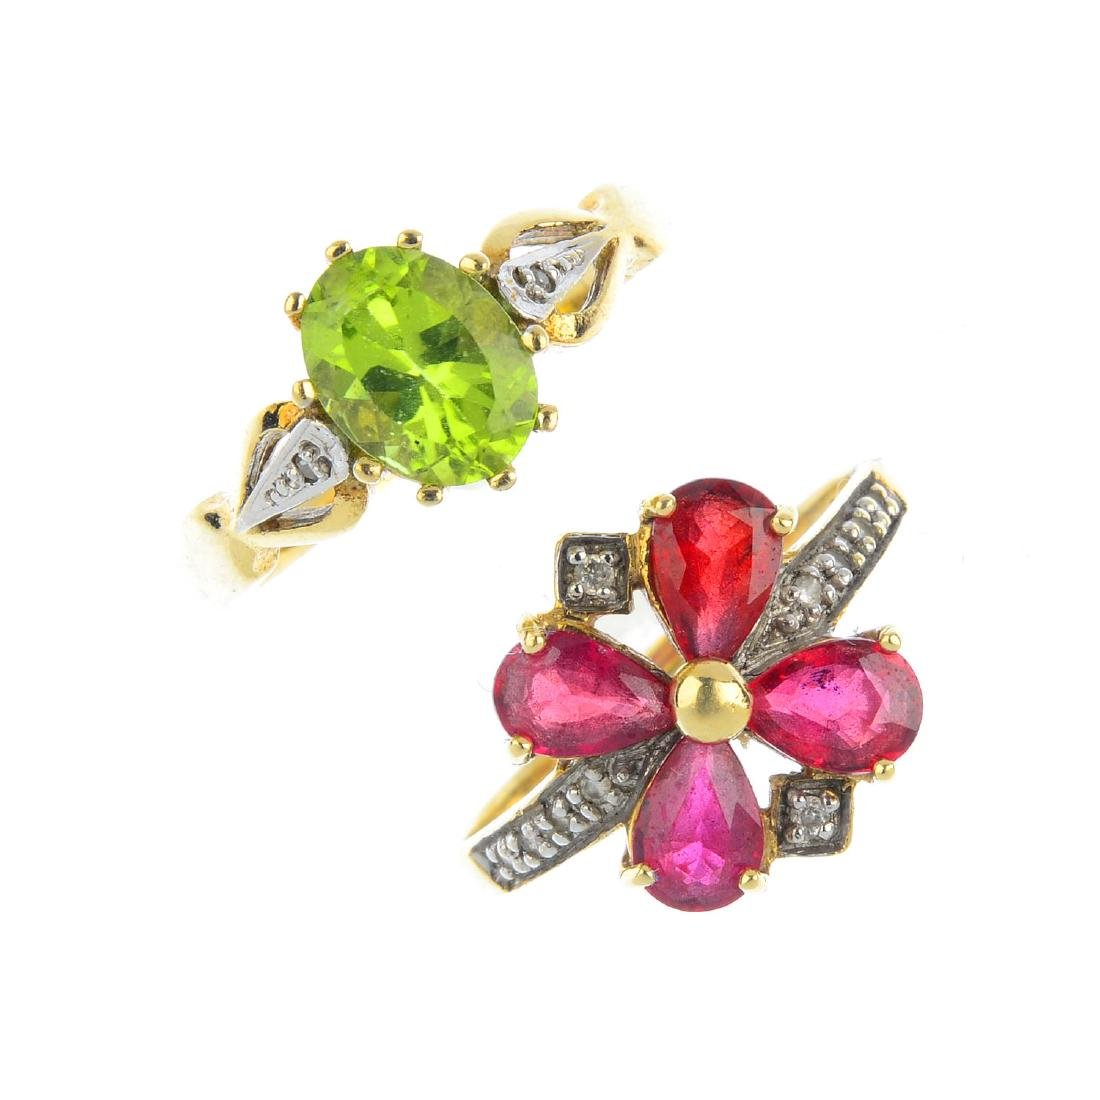 Three 9ct gold gem-set and diamond rings. To include an